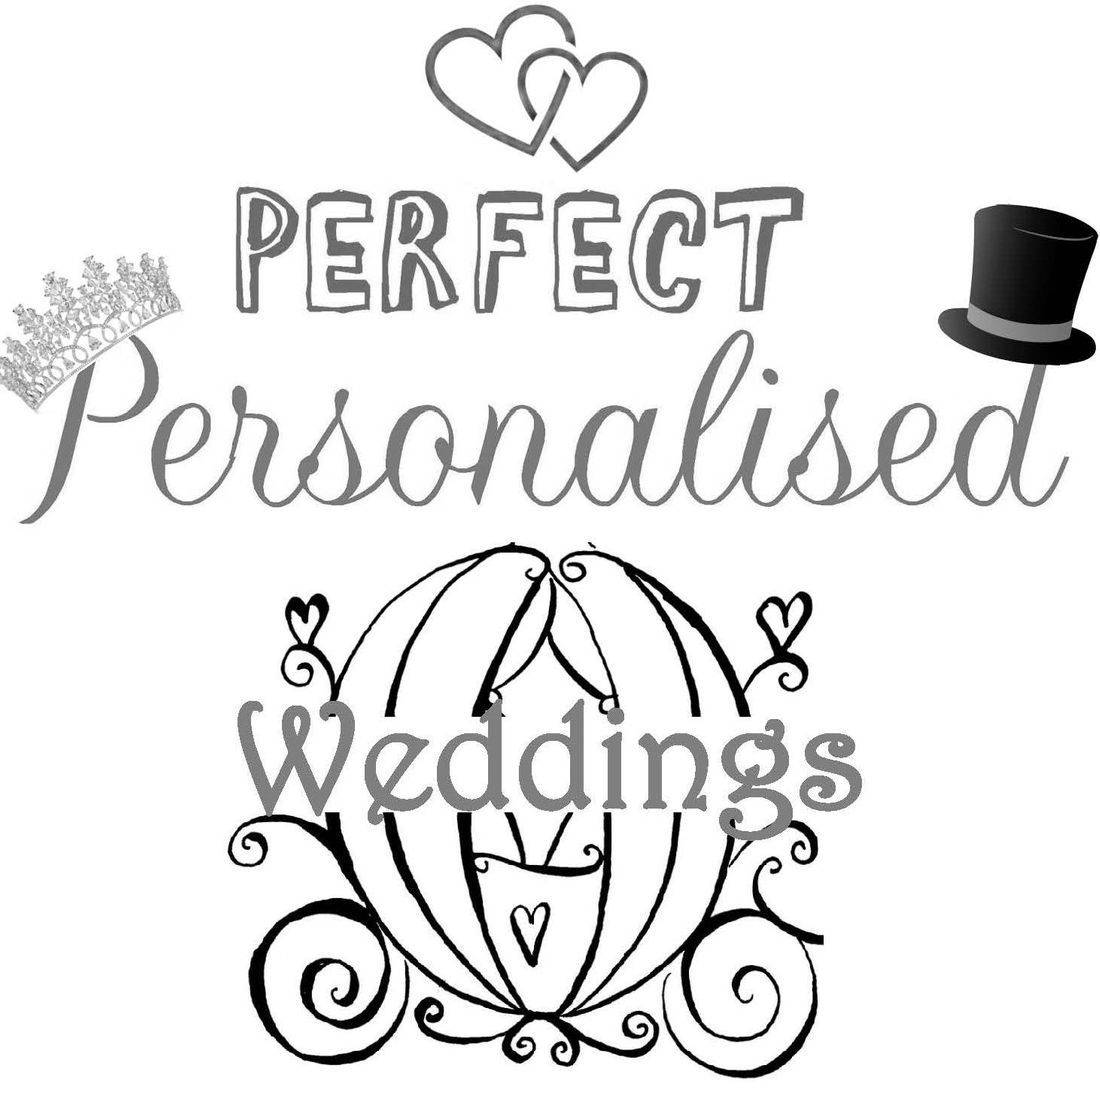 perfect personalised weddings bedfordshire hertfordshire buckinghamshire luton dunstable hemel hemptead wedding supplies popcorn candyfloss dj entertainment chocolate fountain magic magician pamper parties photographer photography toastmaster charity events planning